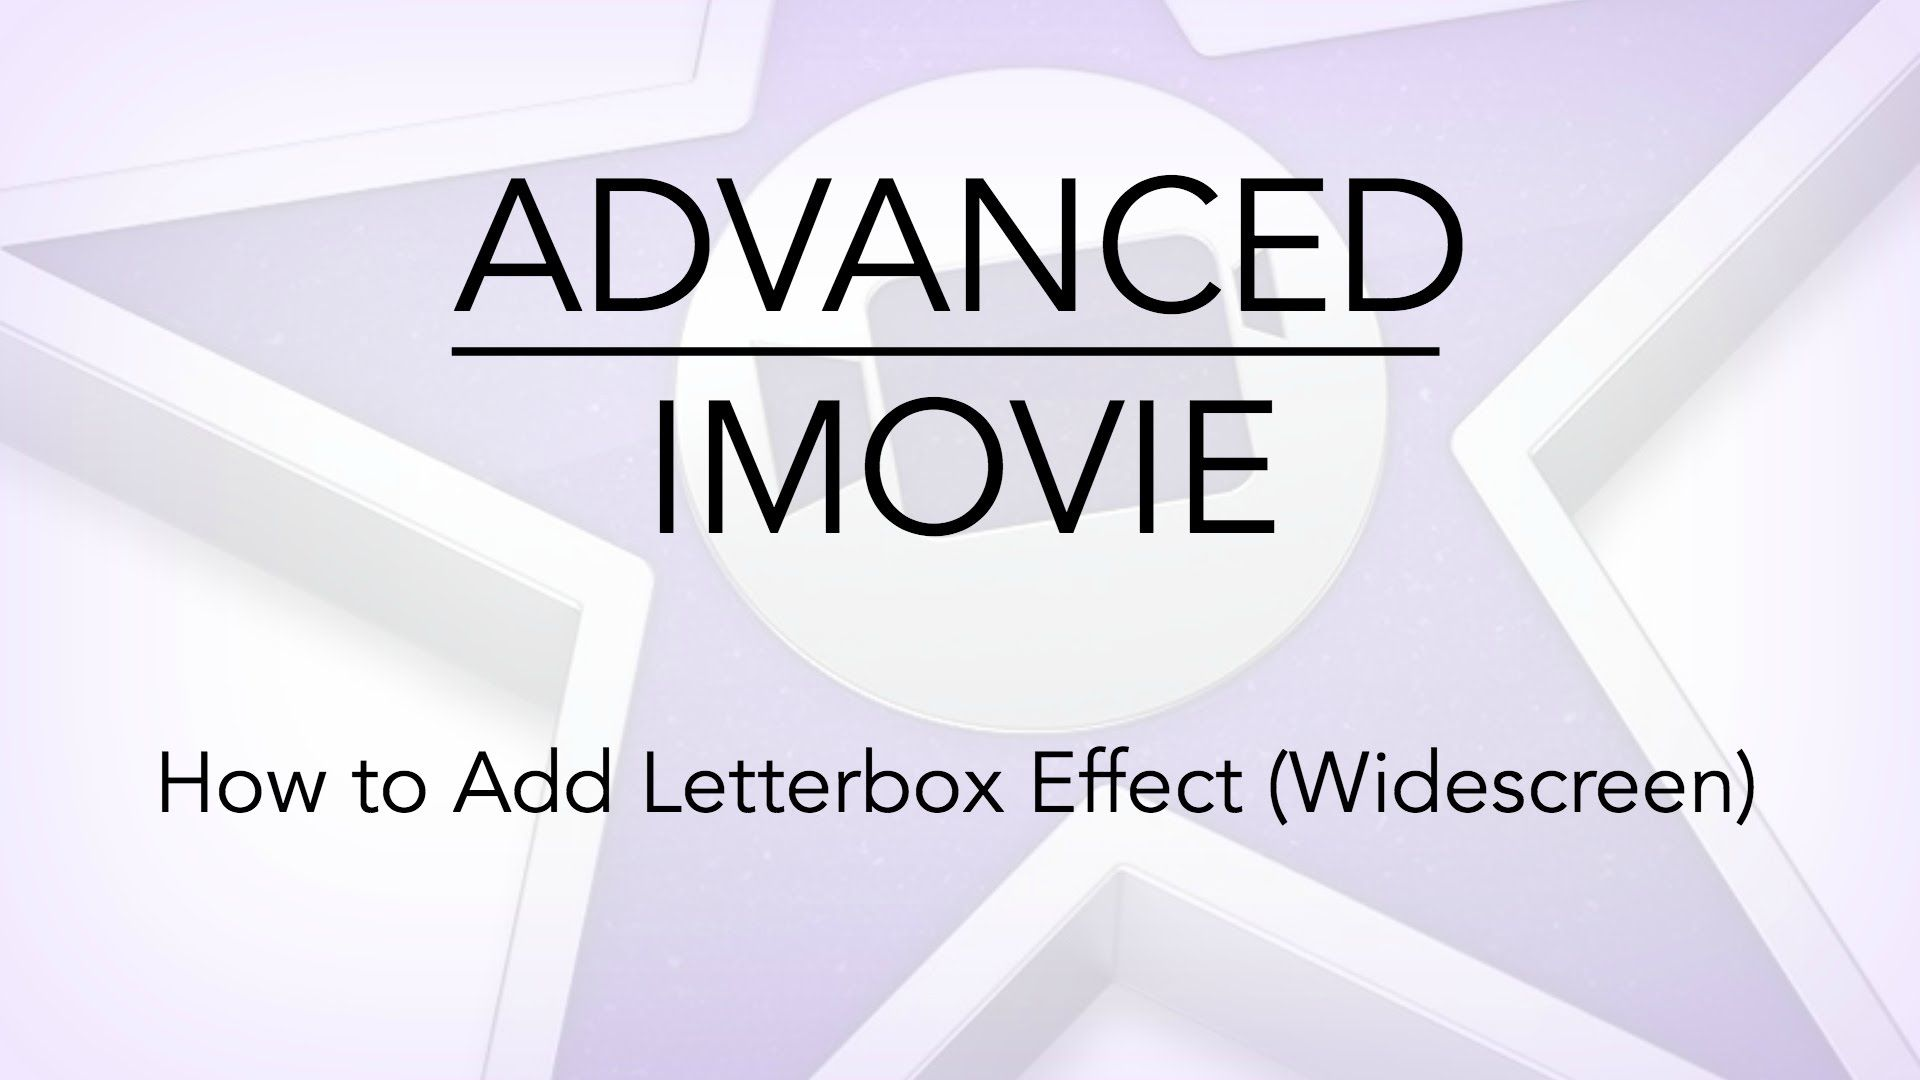 Advanced iMovie: How to Add Letterbox Effect (Widescreen) | iMovie ...